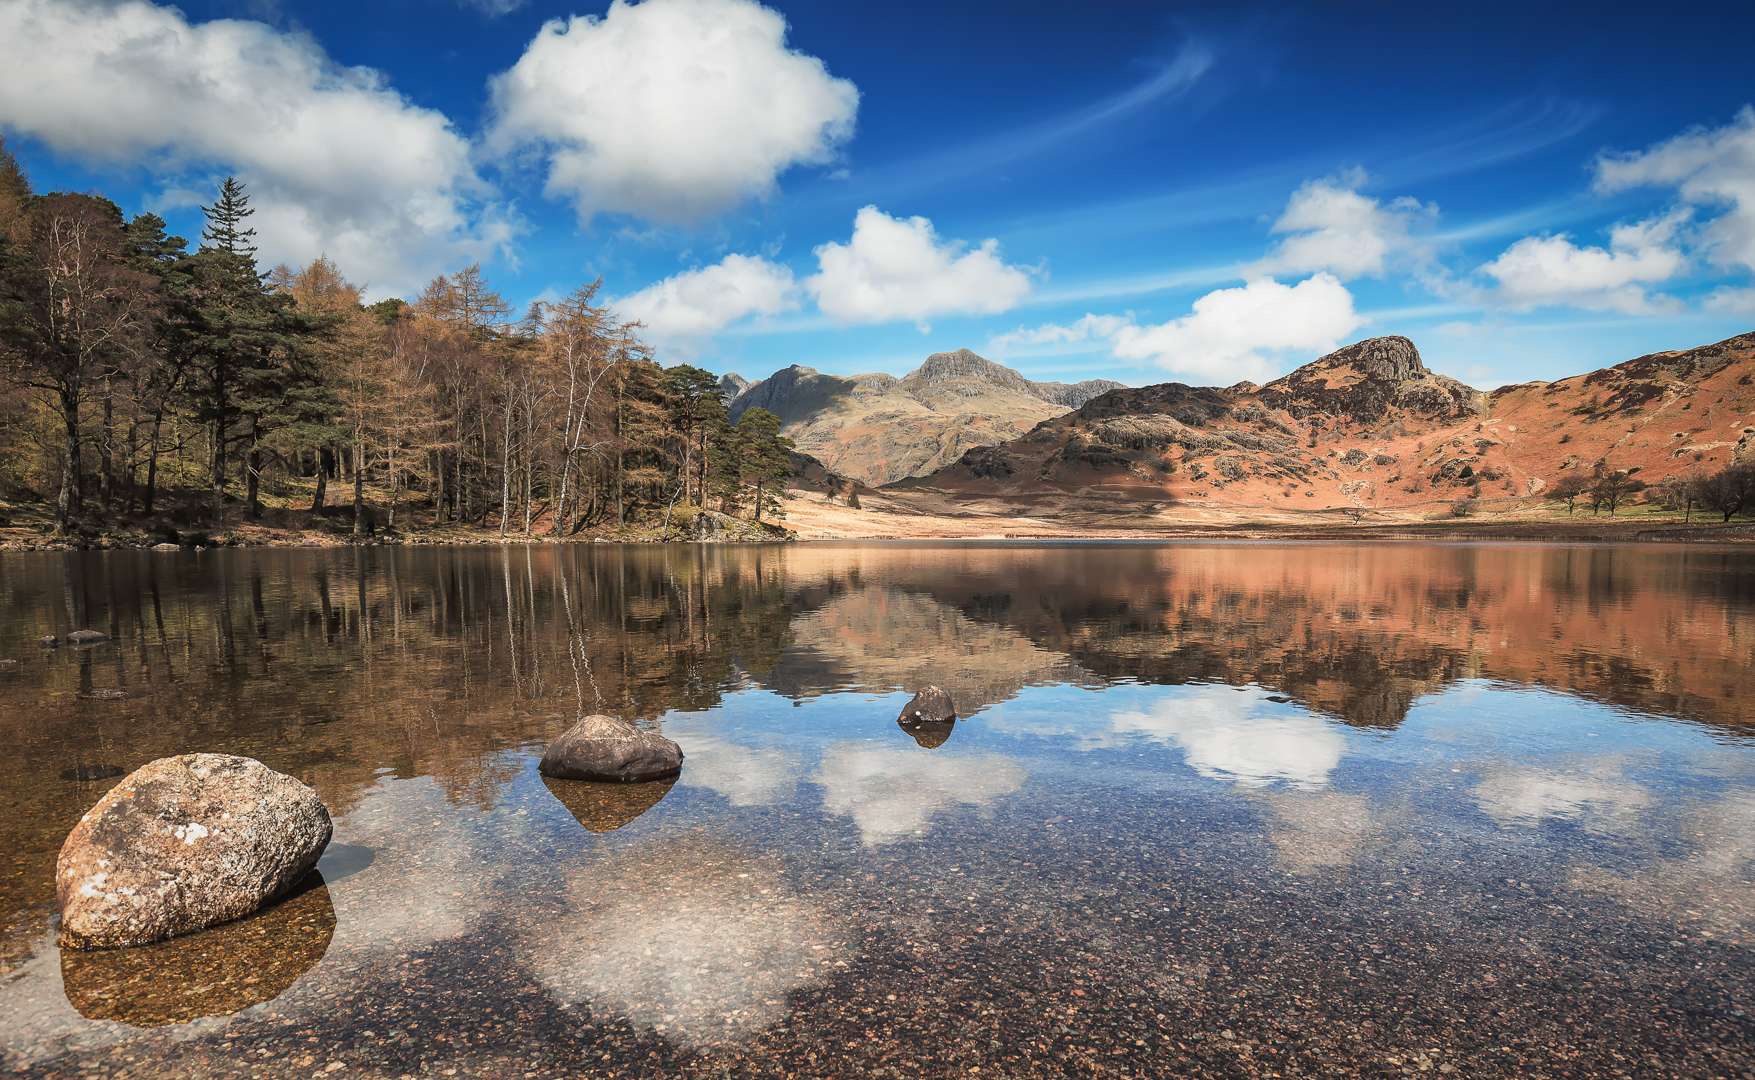 Blea Tarn Revisited